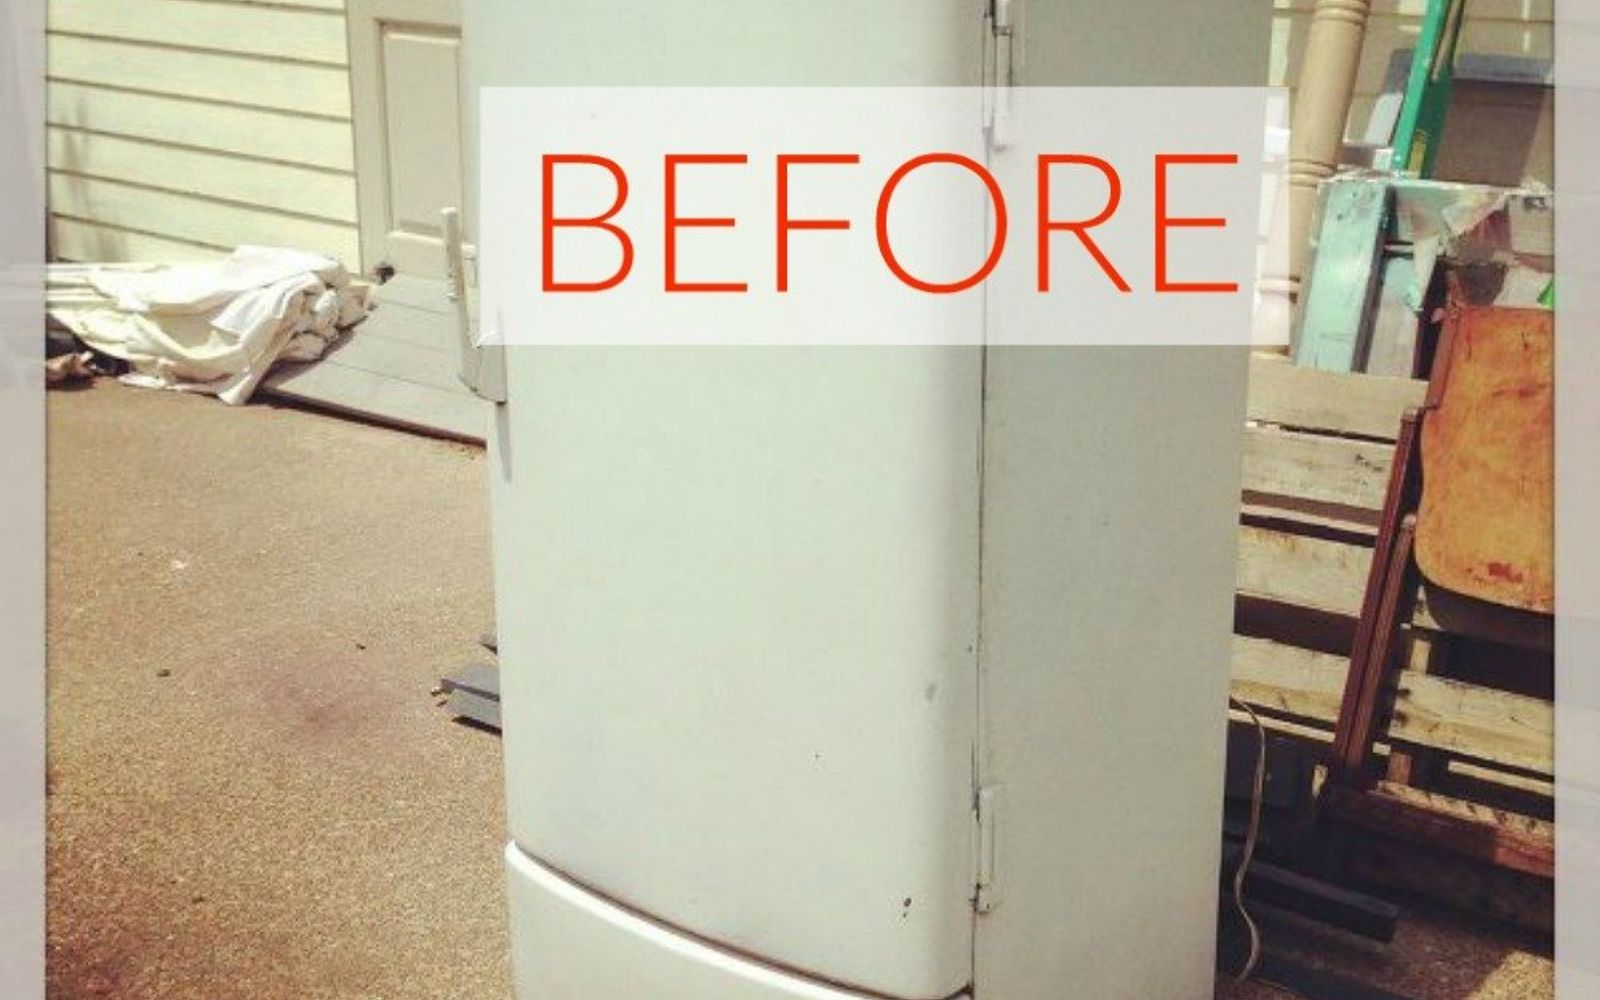 s don t buy new appliances these 9 diy hacks are brilliant, appliances, Before A cute 1950s fridge that still worked